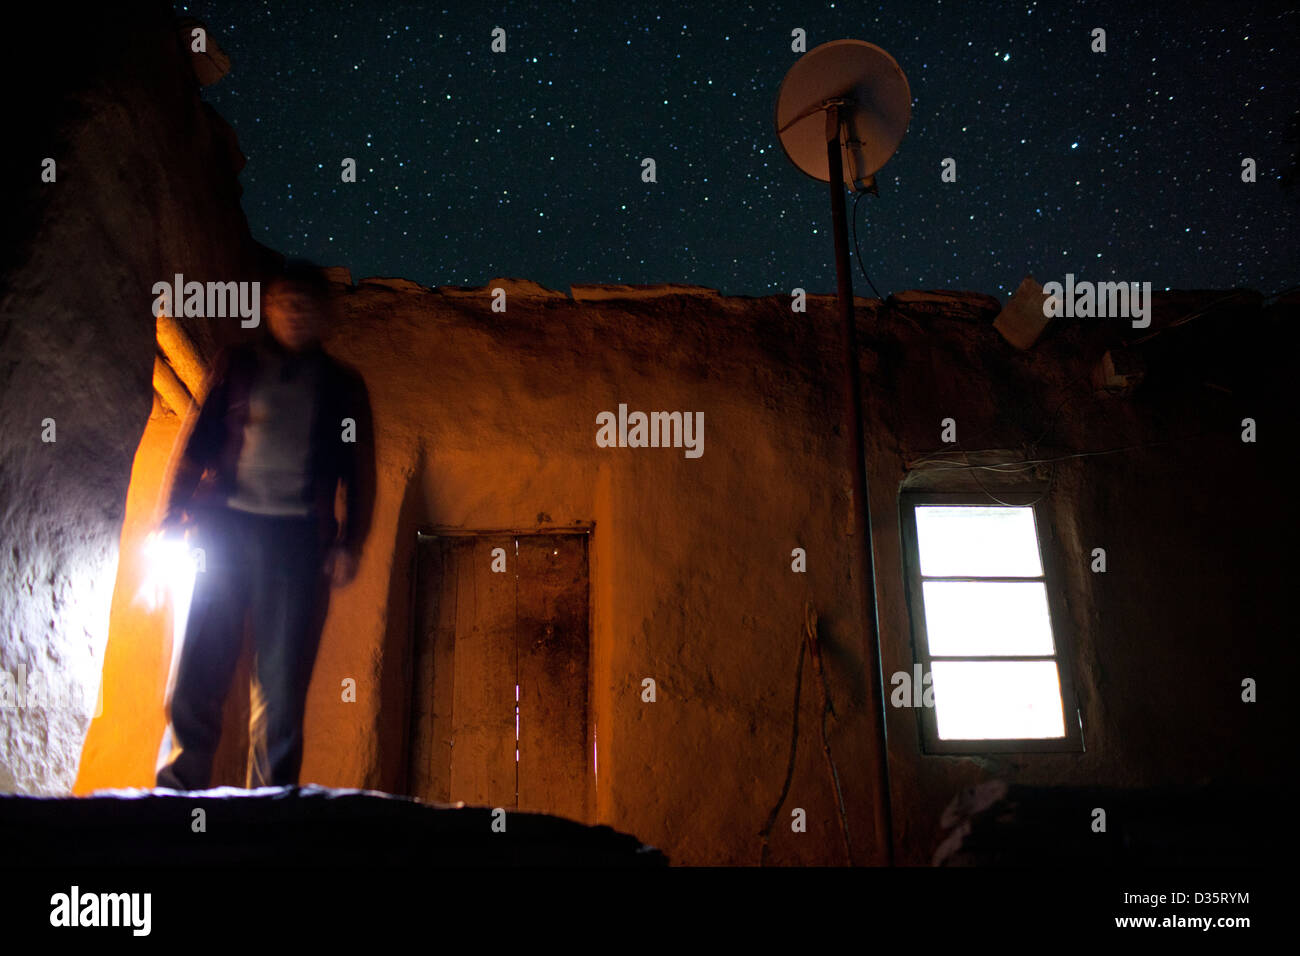 The village of Bedev, Tajikistan, uses solar electricity to support lighting and TV usage at night. - Stock Image